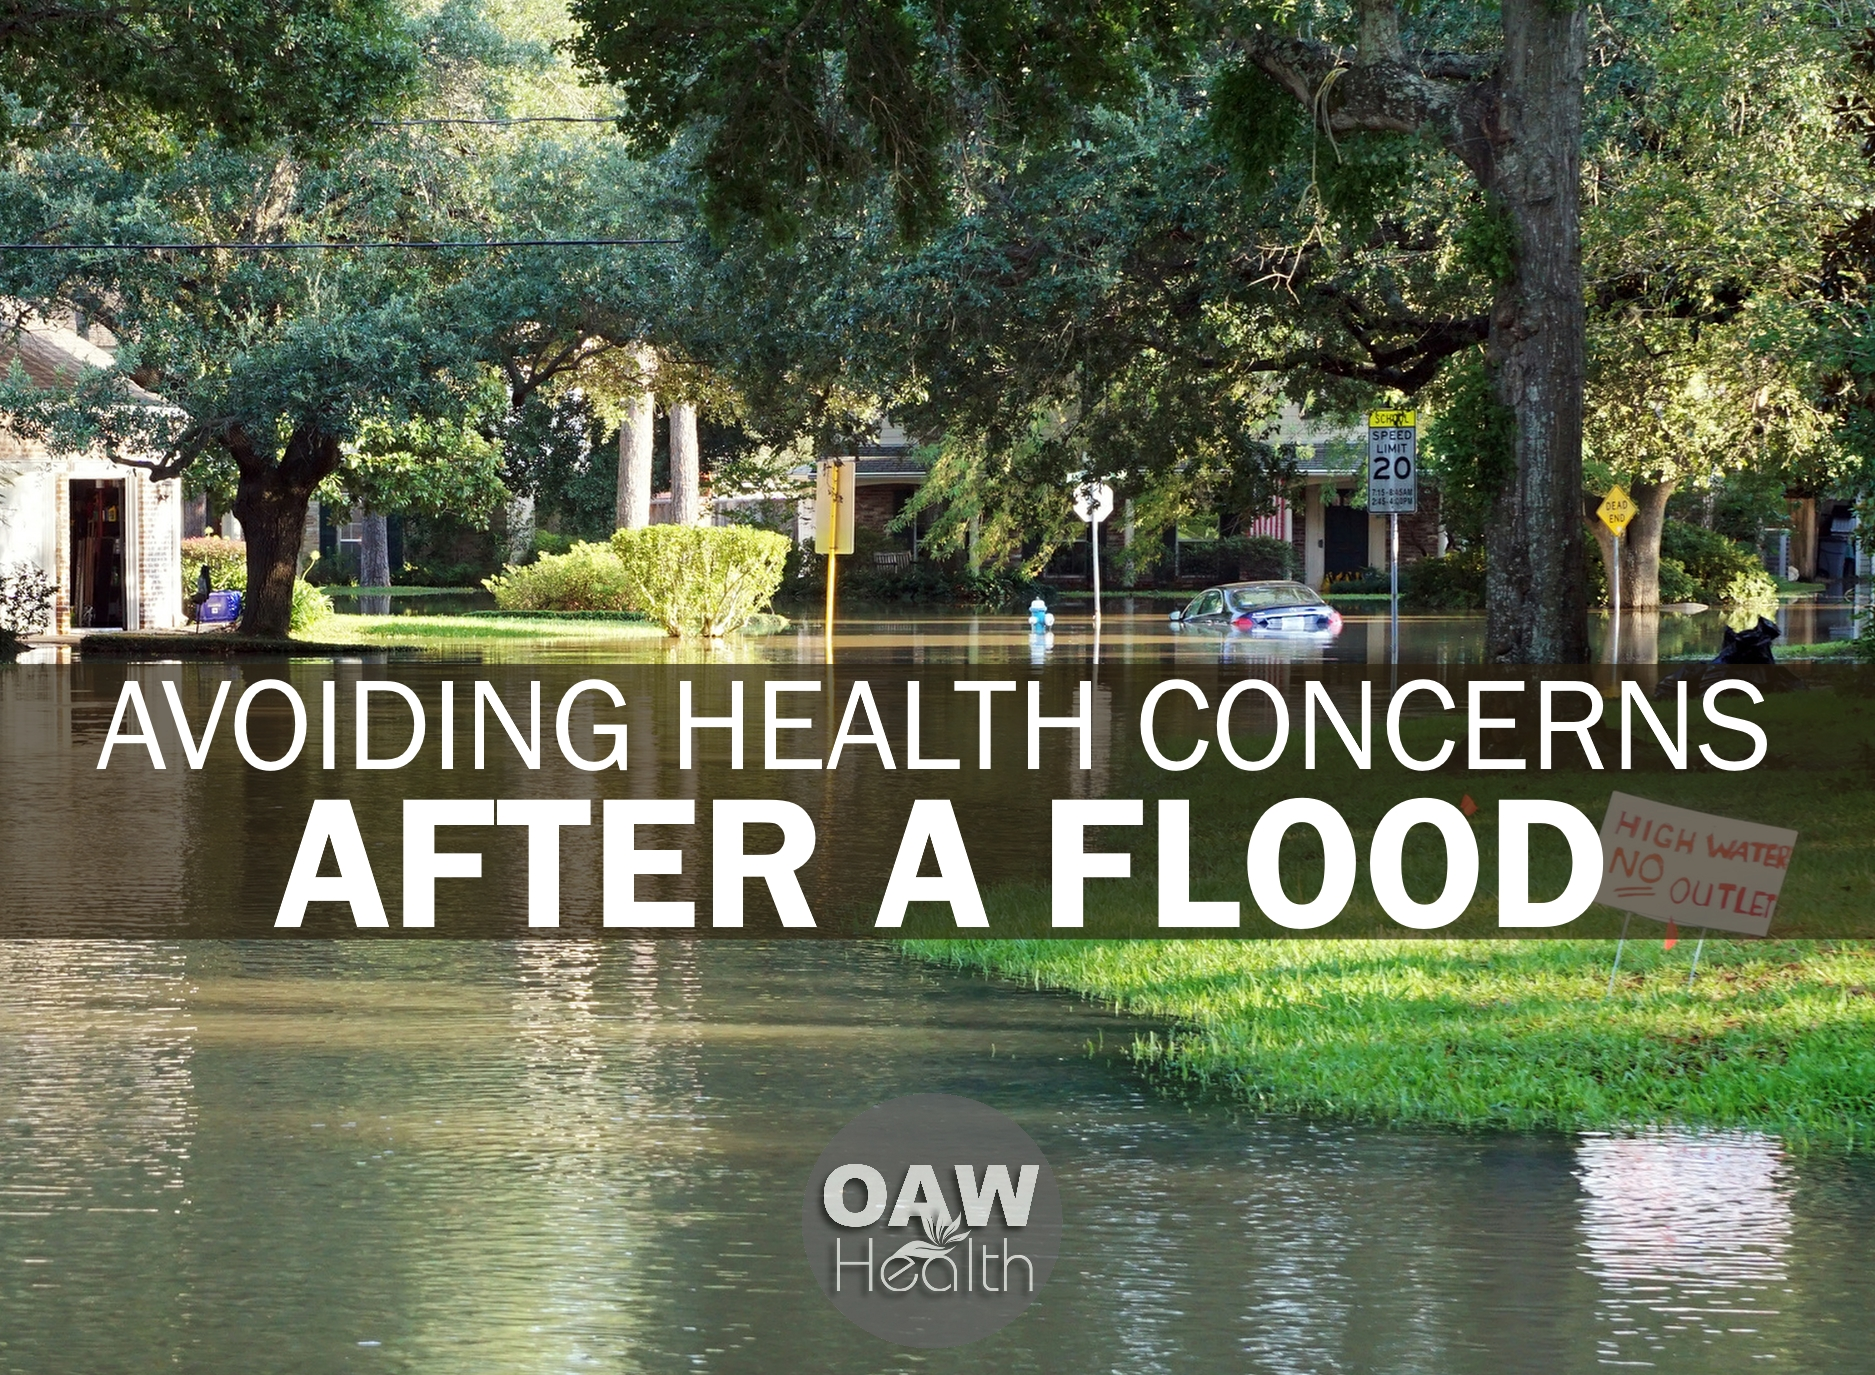 Avoiding Health Concerns after a Flood